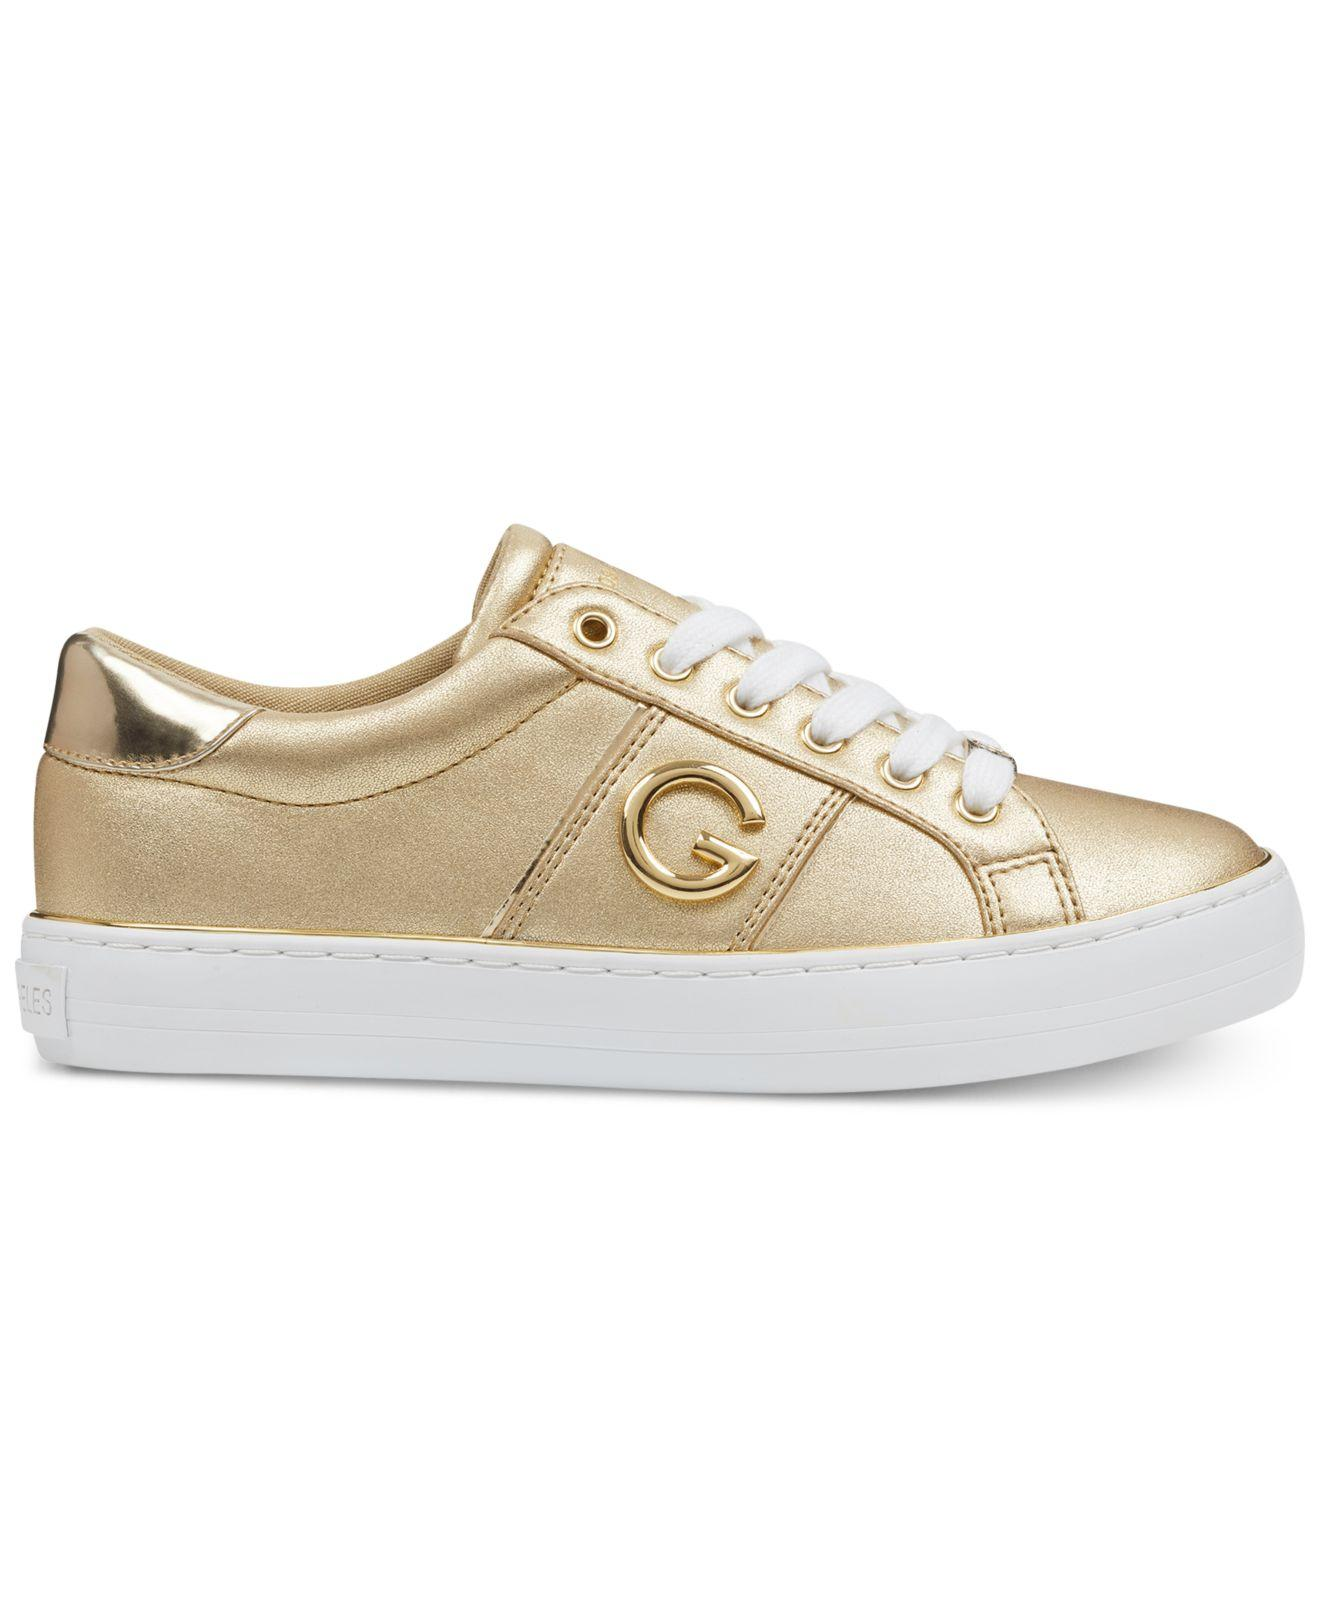 G by Guess Grandy Sneakers in Gold